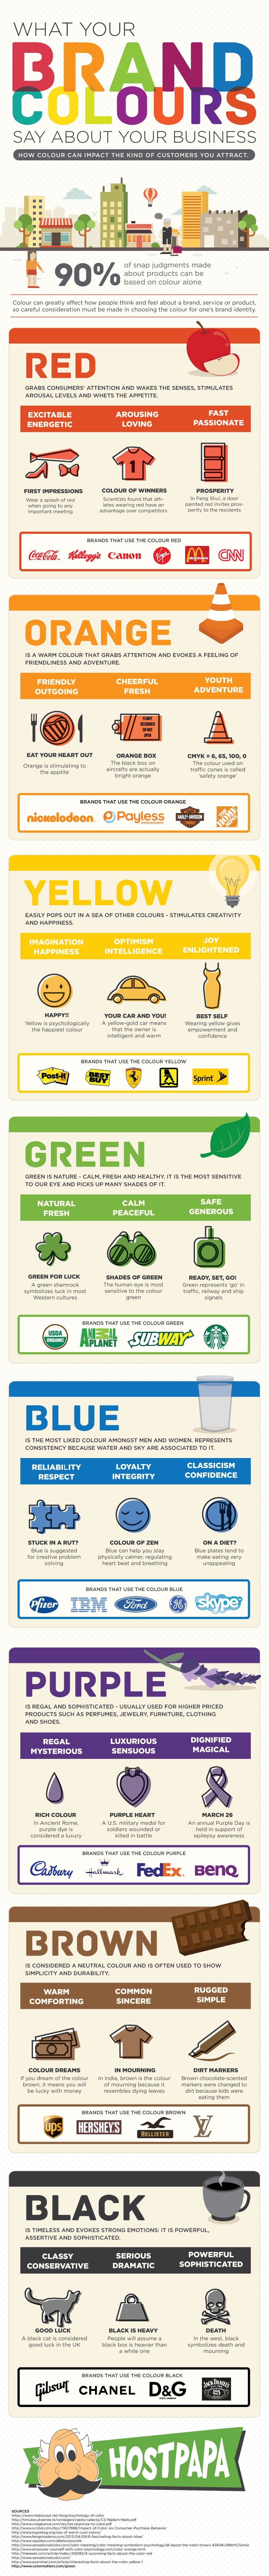 What do Your Brand Colors Say About Your Business? [Infographic] | Social Media Today